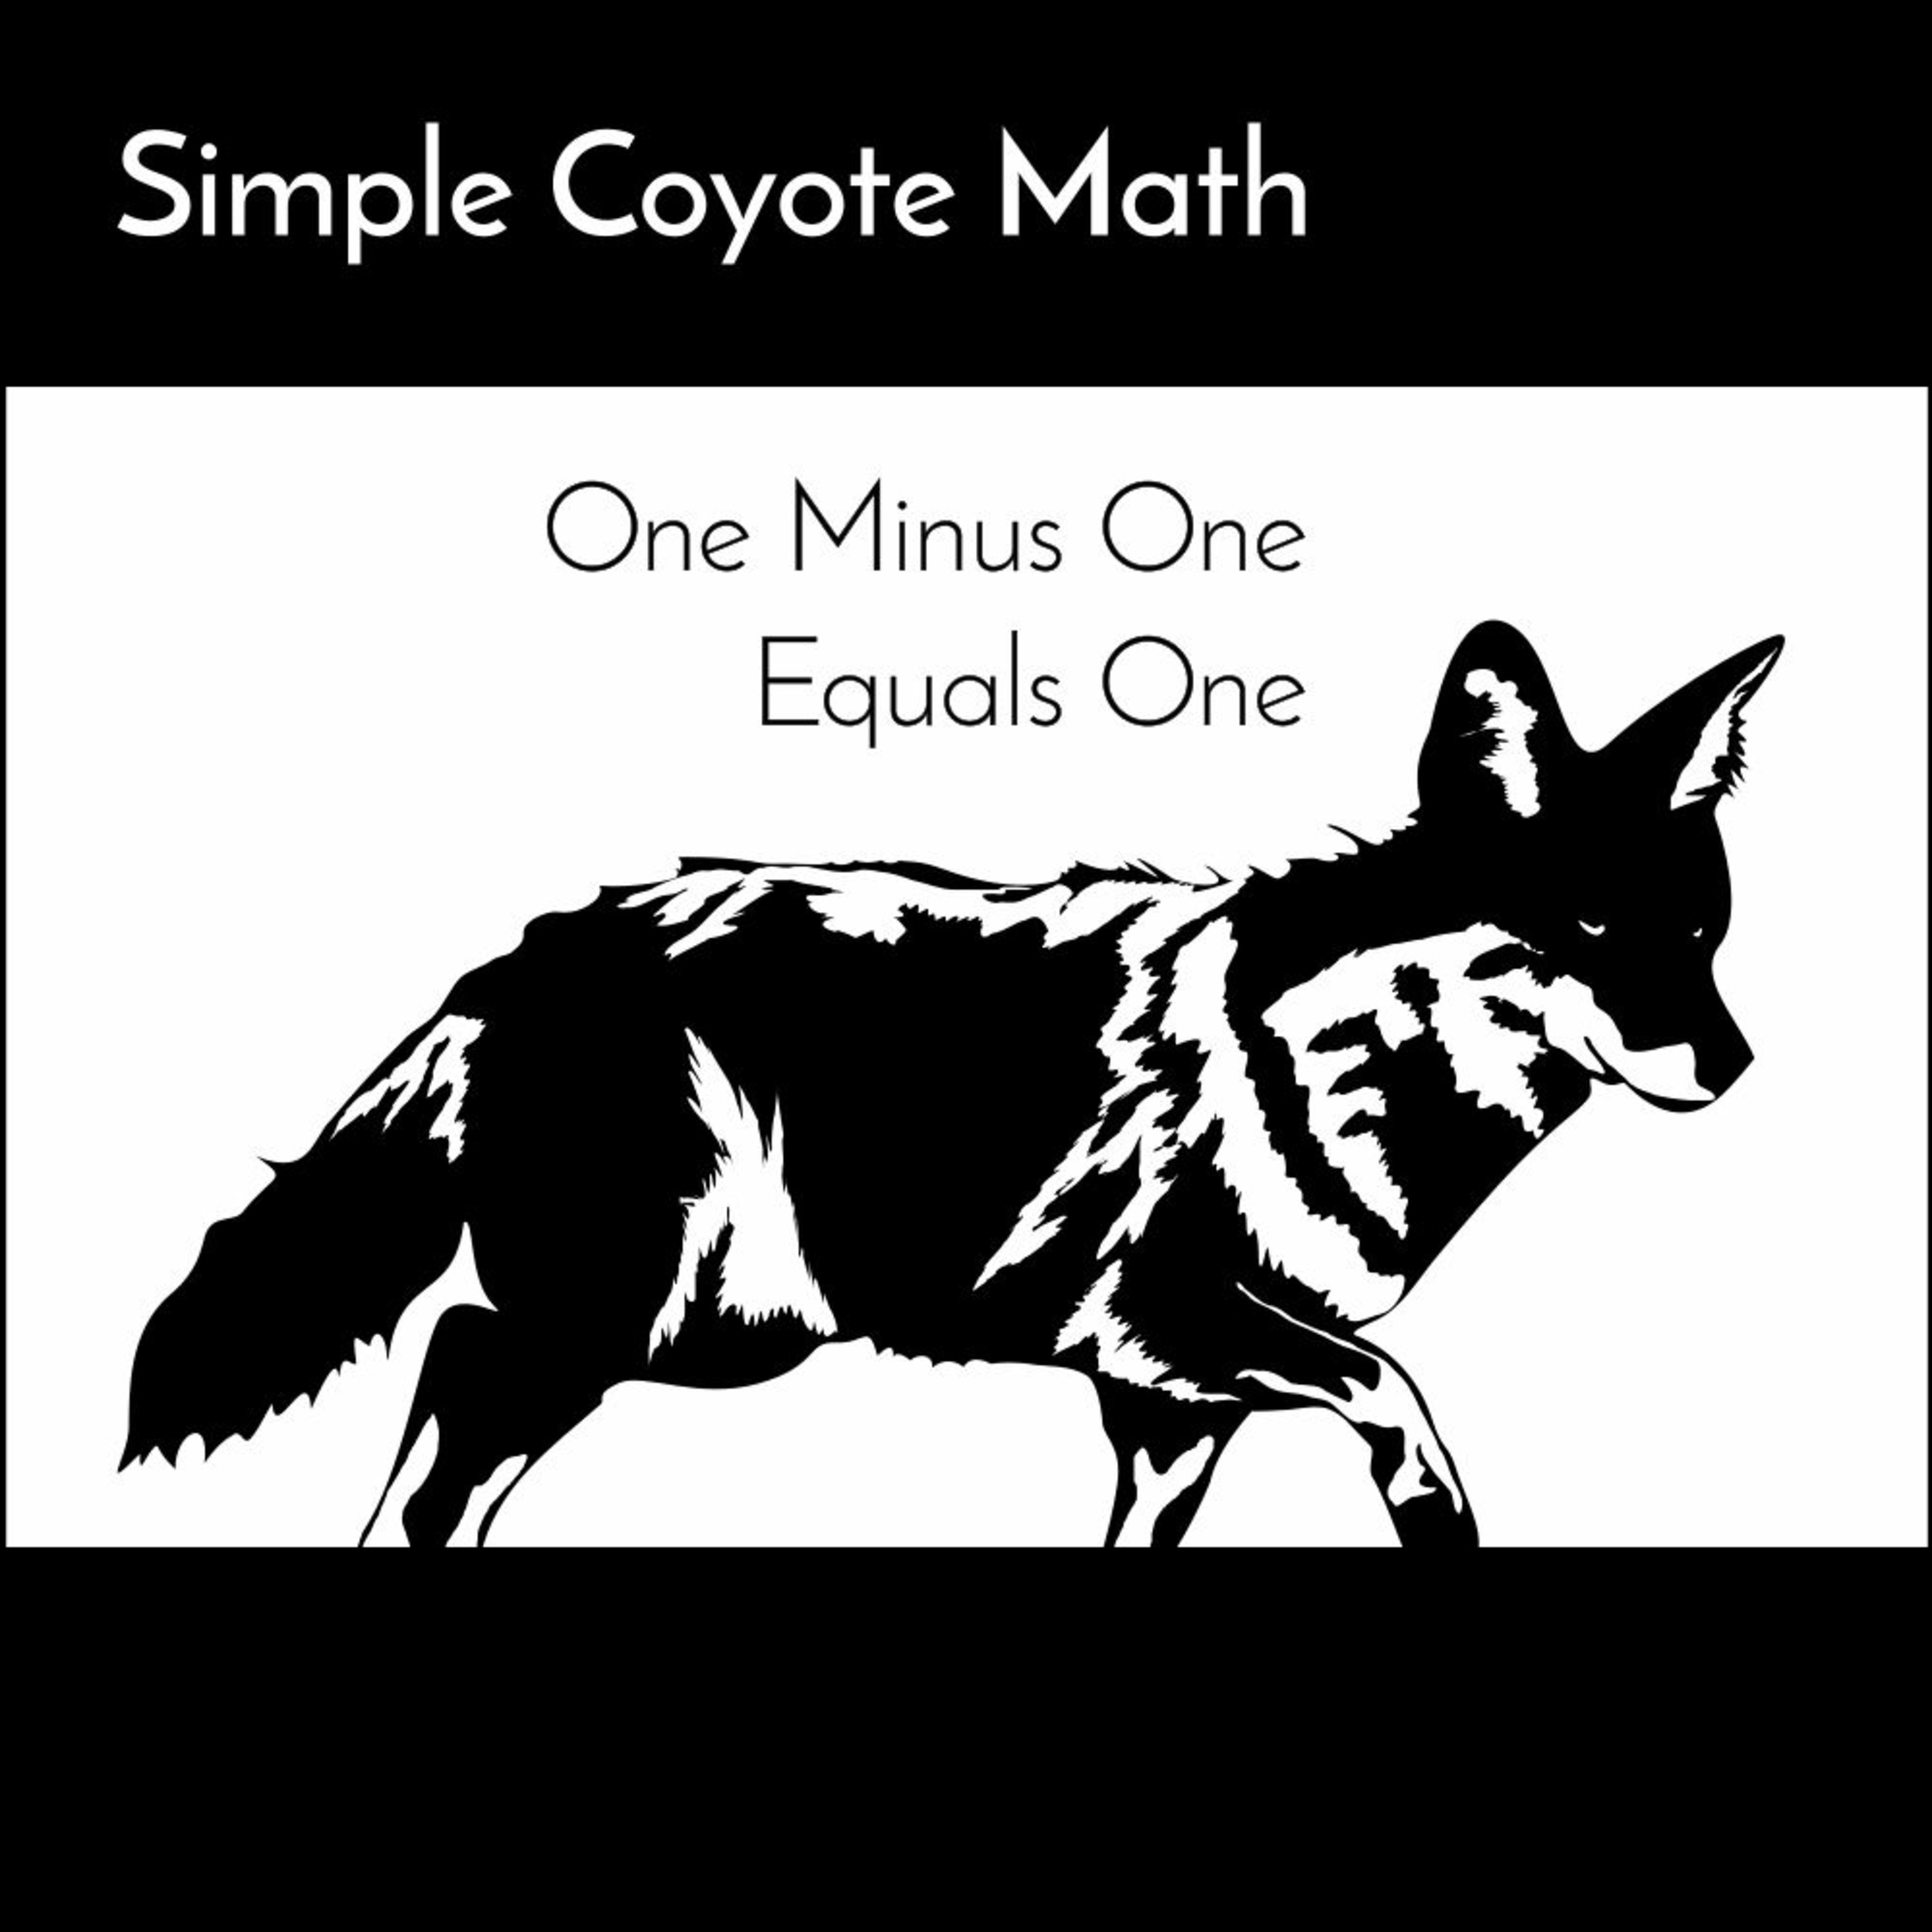 Simple Coyote Math, Part 3